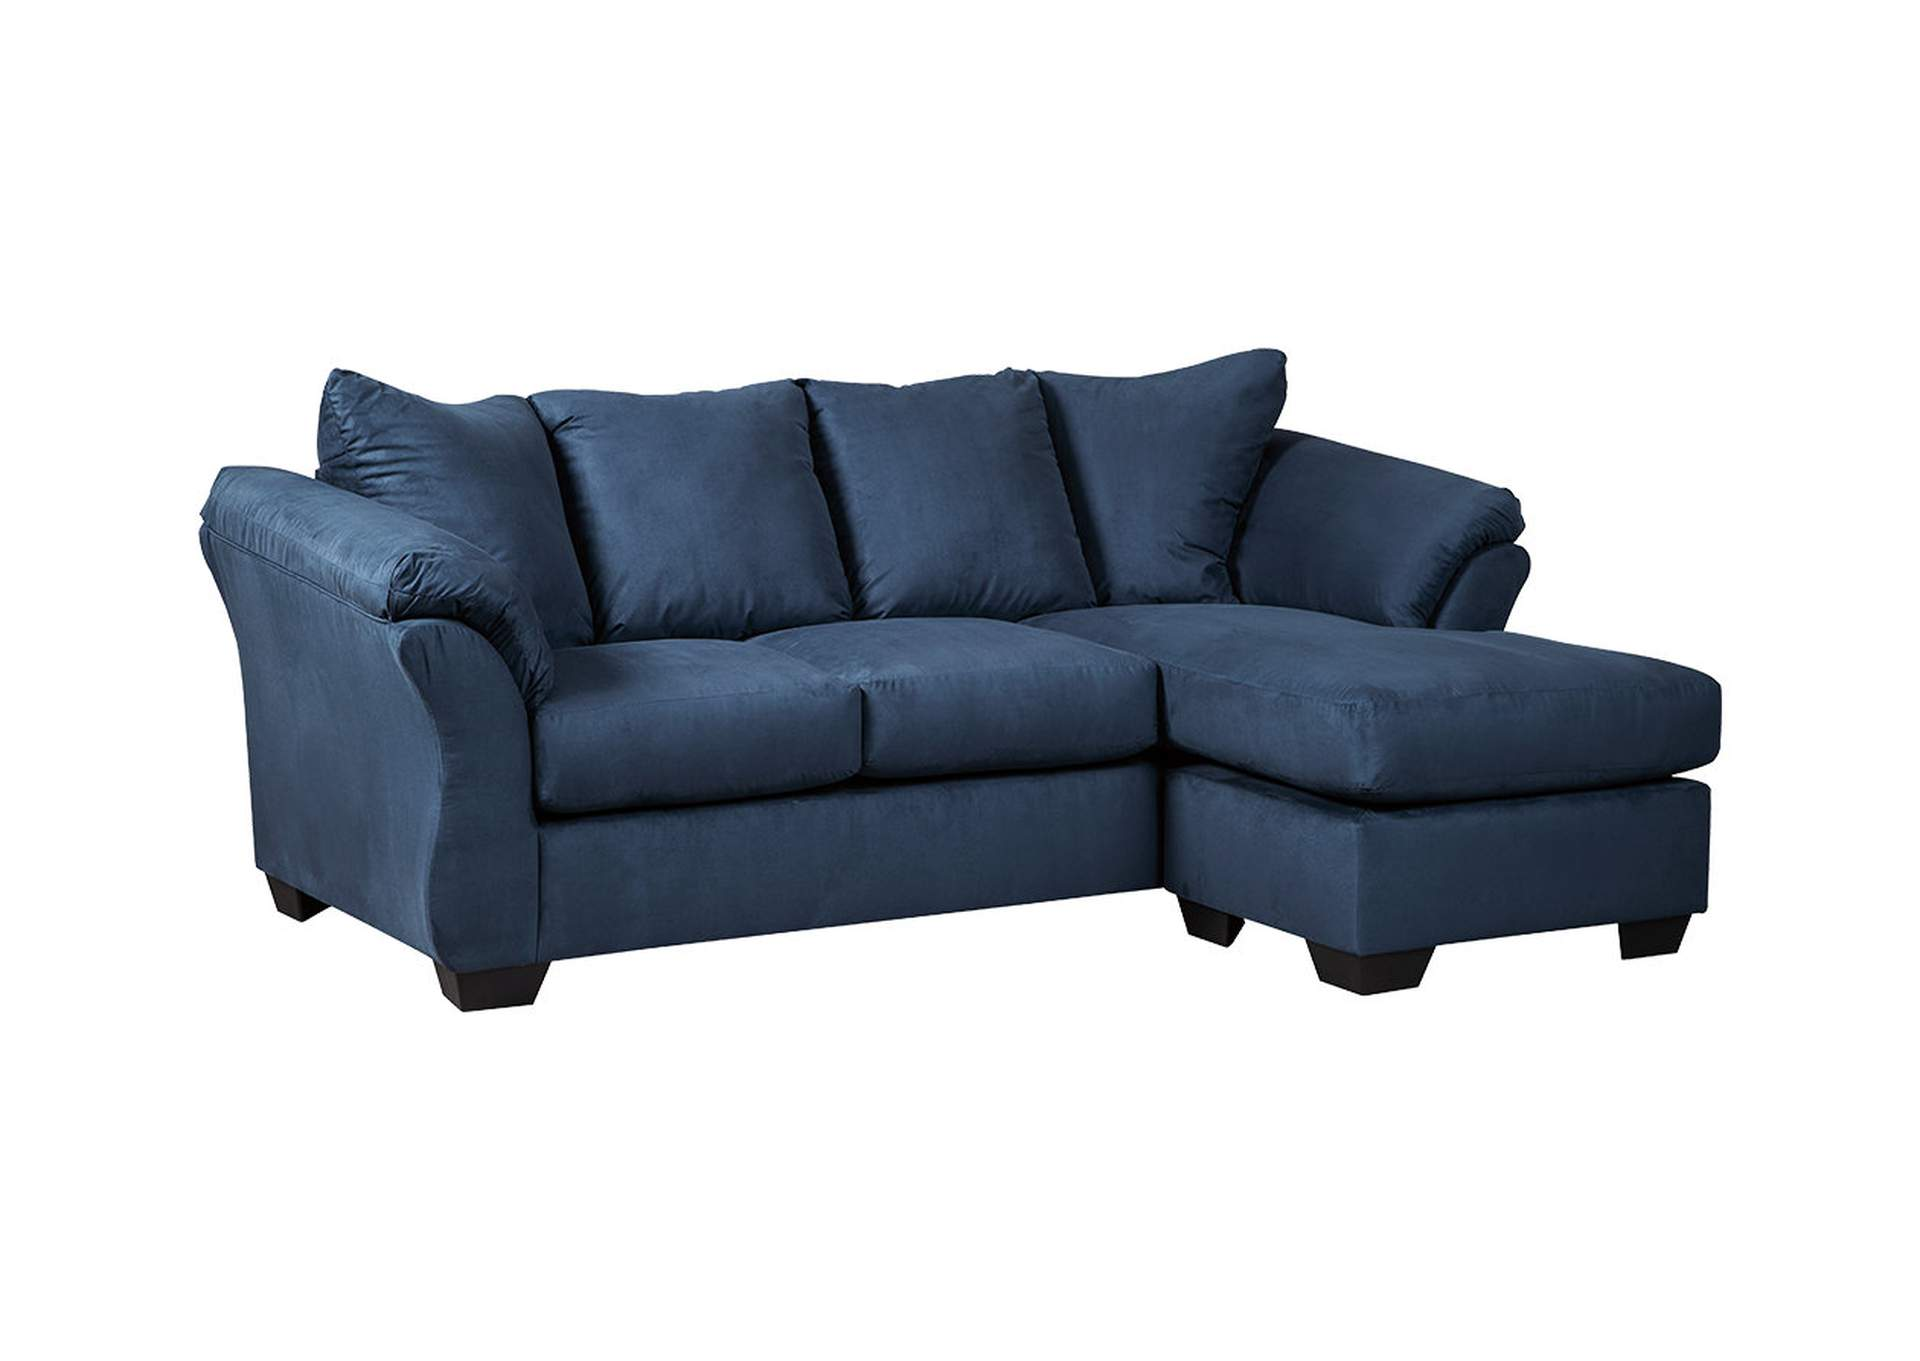 Darcy Blue Sofa Chaise,Signature Design By Ashley